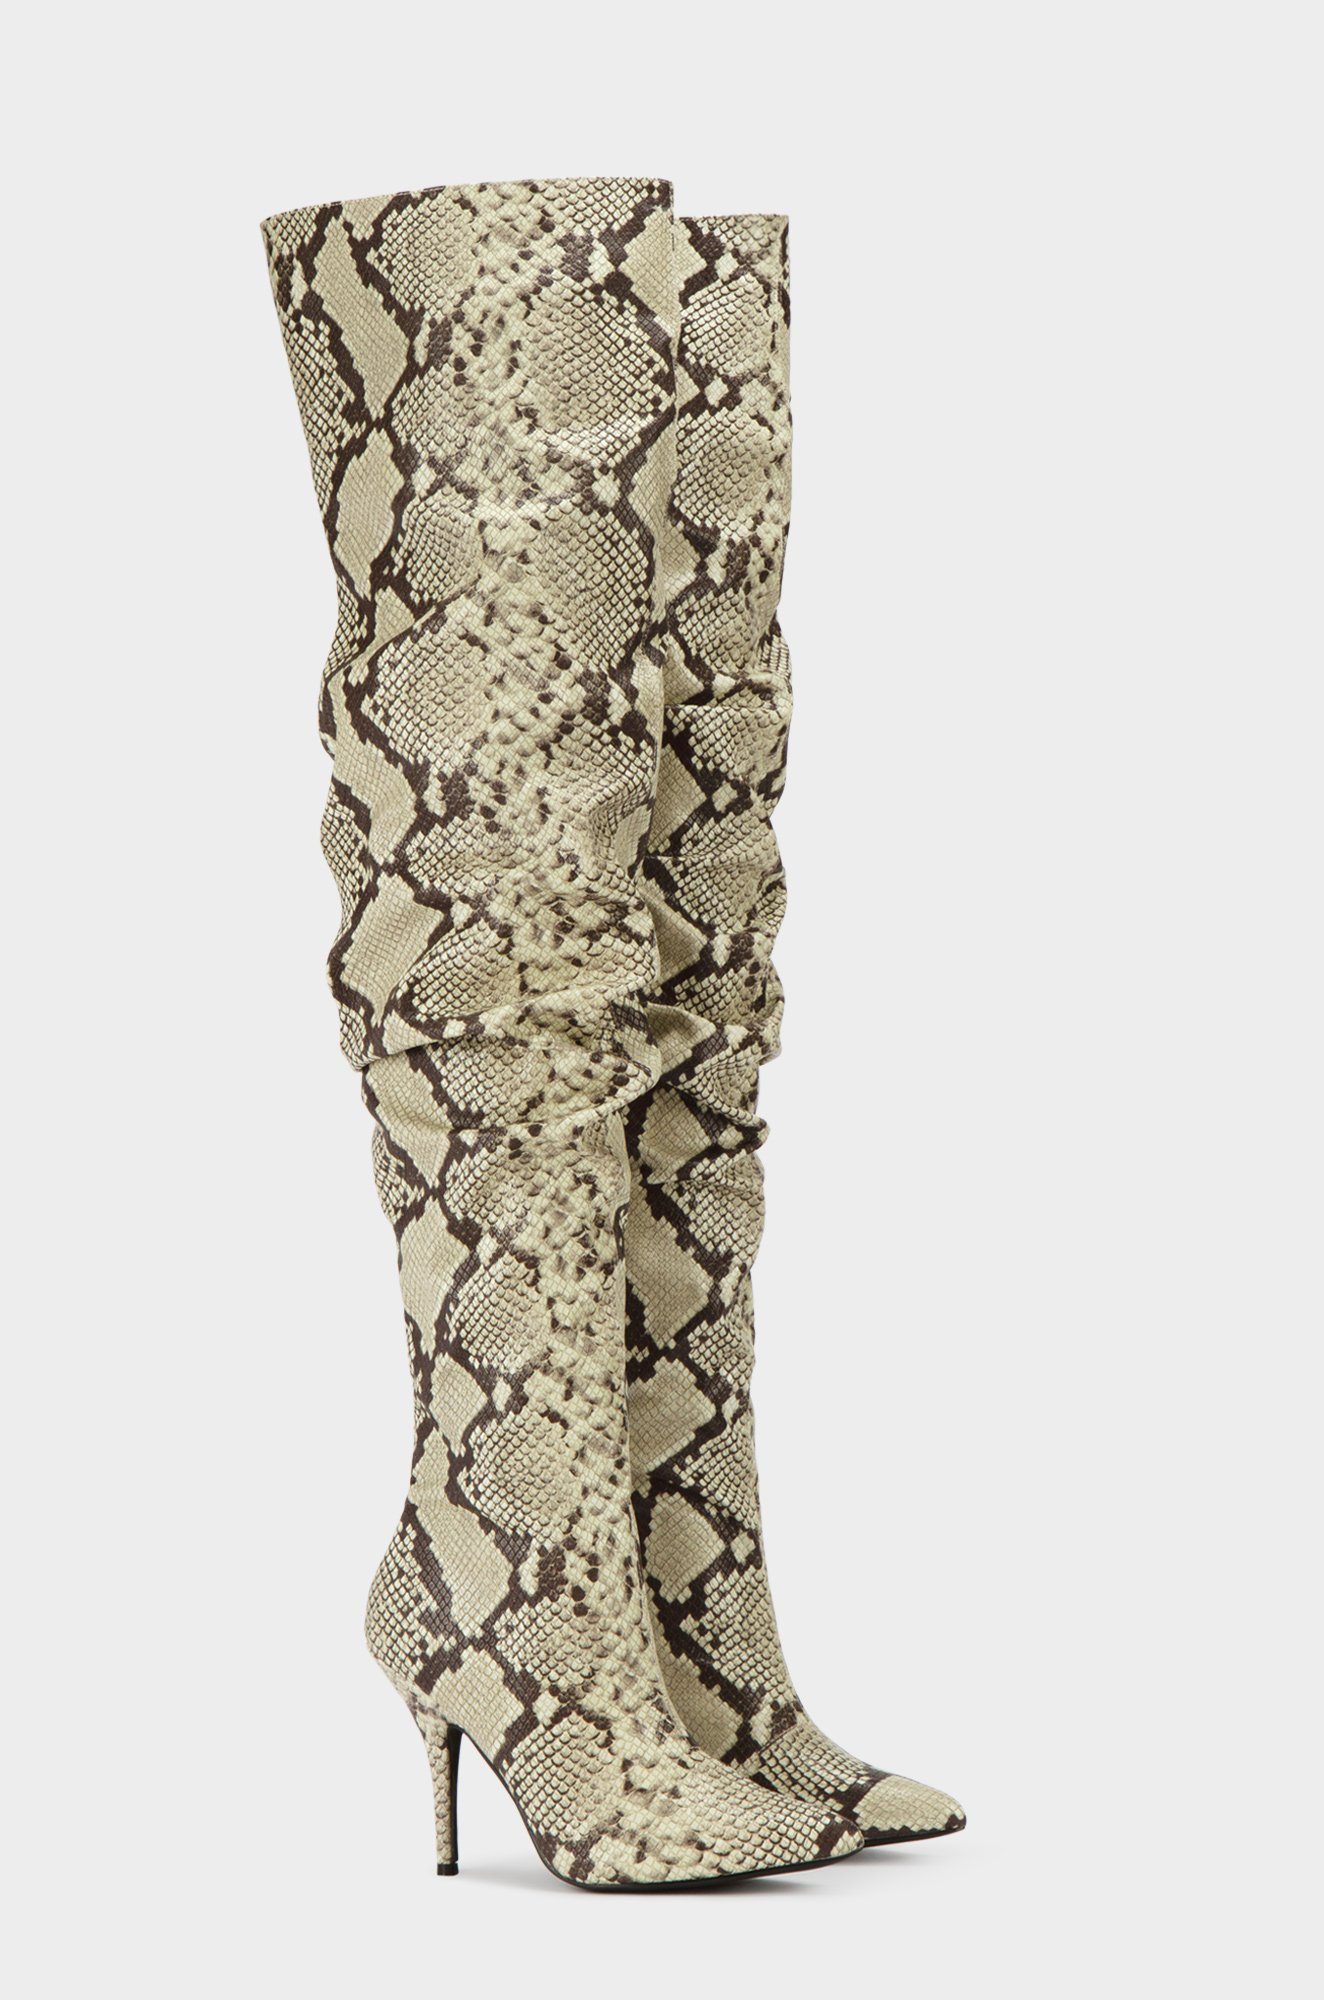 Cape-Robbin-Bown-Snake-Thigh-High-Slouch-Pointed-Toe-Over-The-Knee-Stiletto-Boot thumbnail 12